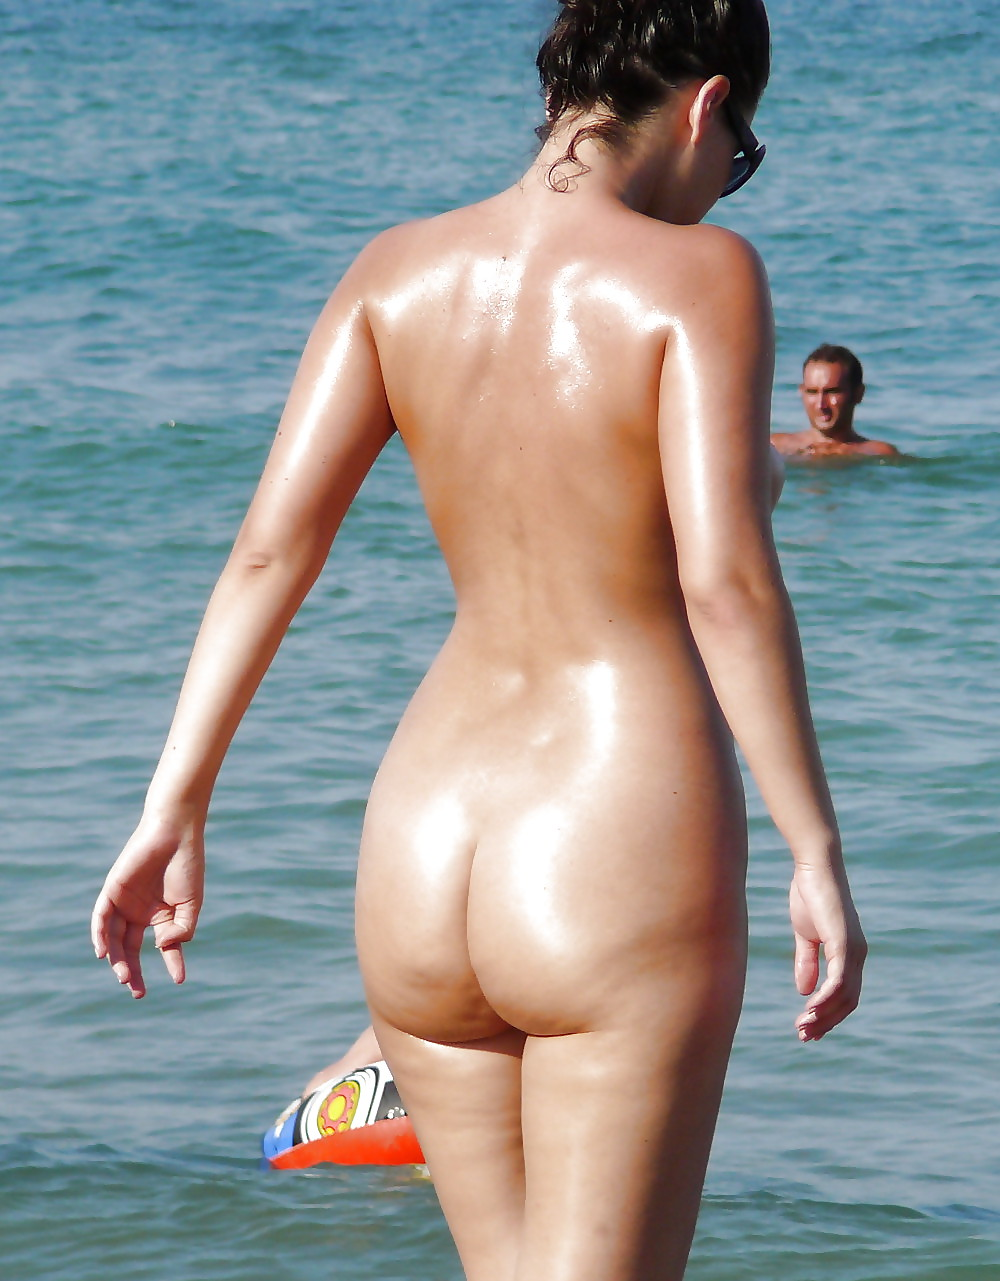 Teen nude booty on beach #5